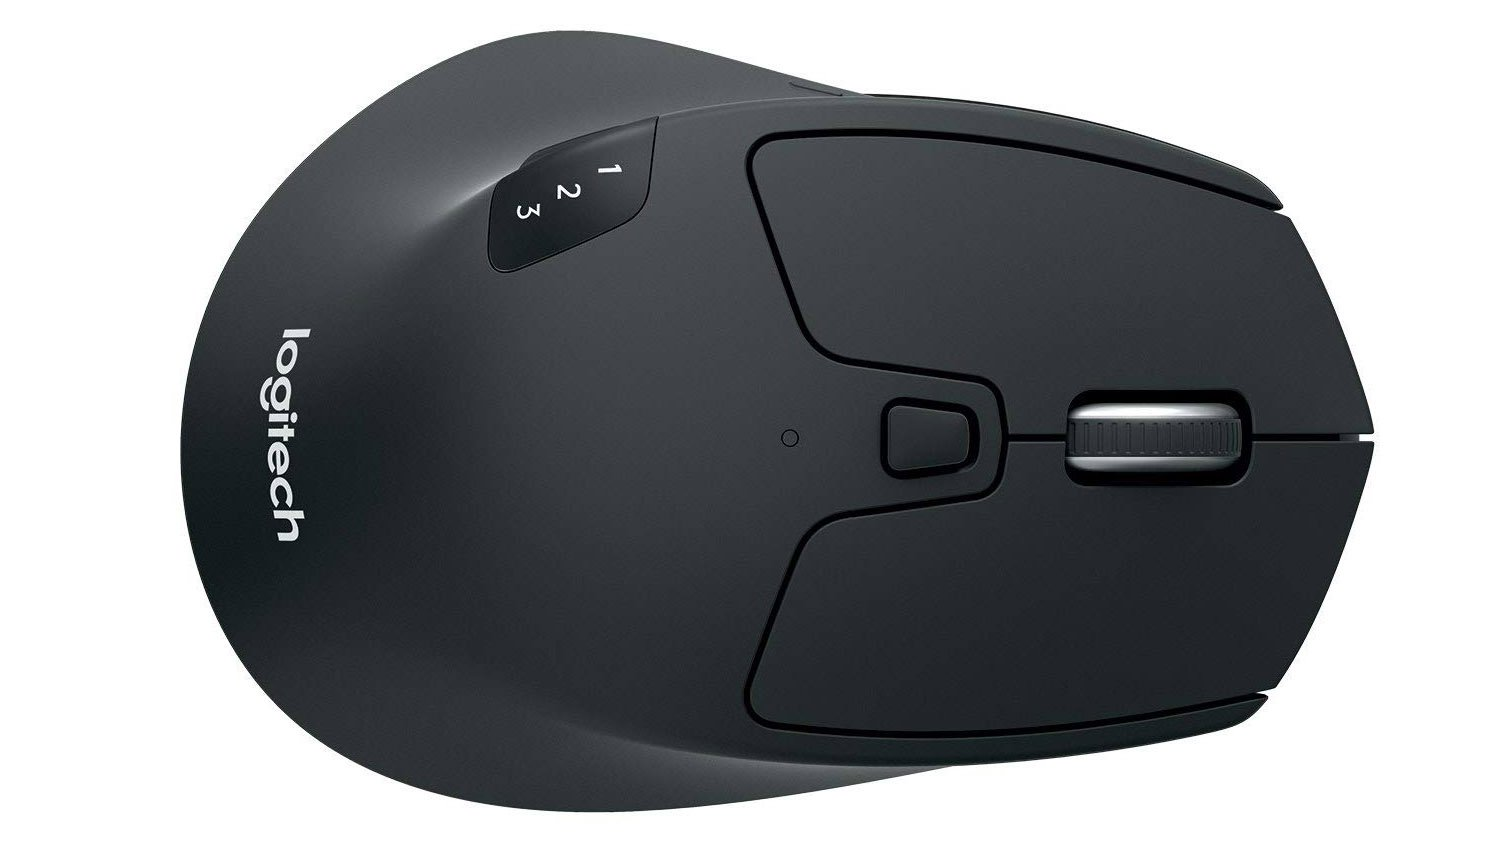 9255691b4db The M720 doesn't have the laser sensor of the MX Master 2S, but it's  nonetheless a feature-rich mouse for its price point. It connects via  Bluetooth or a ...